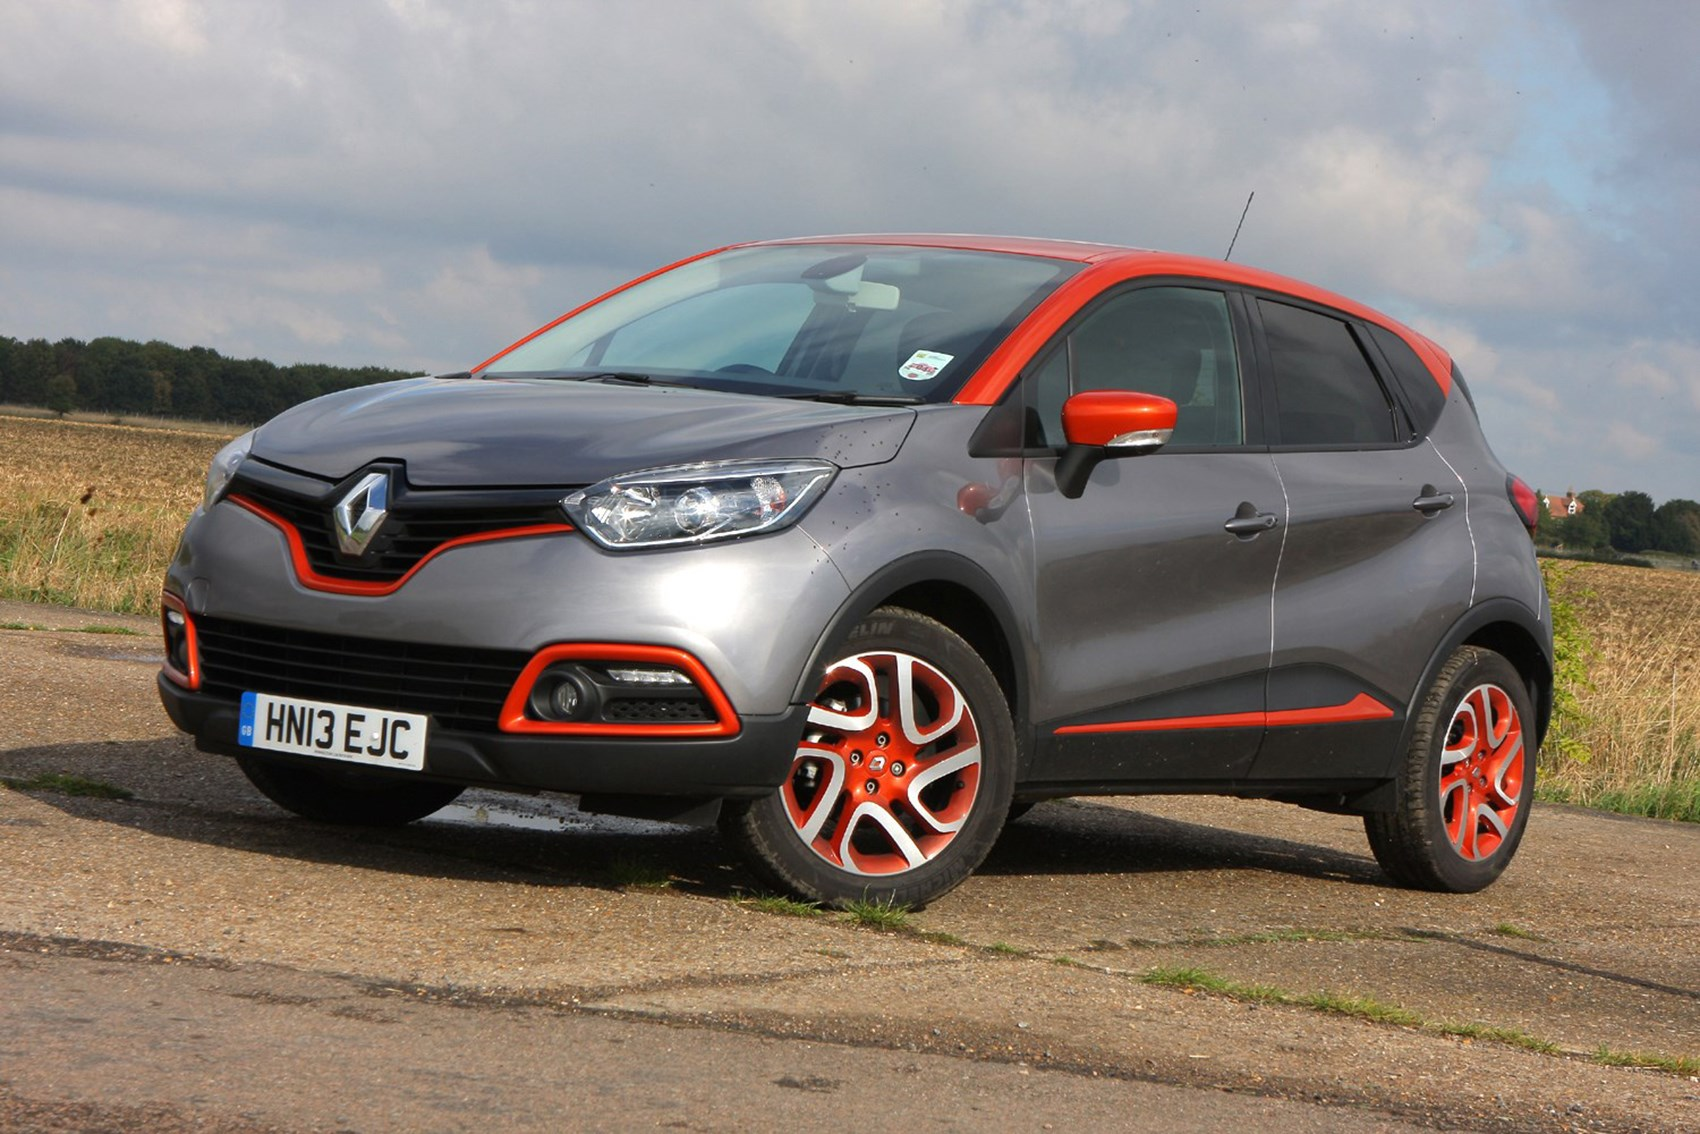 Best Crossover Cars: The Best Used Crossover Cars